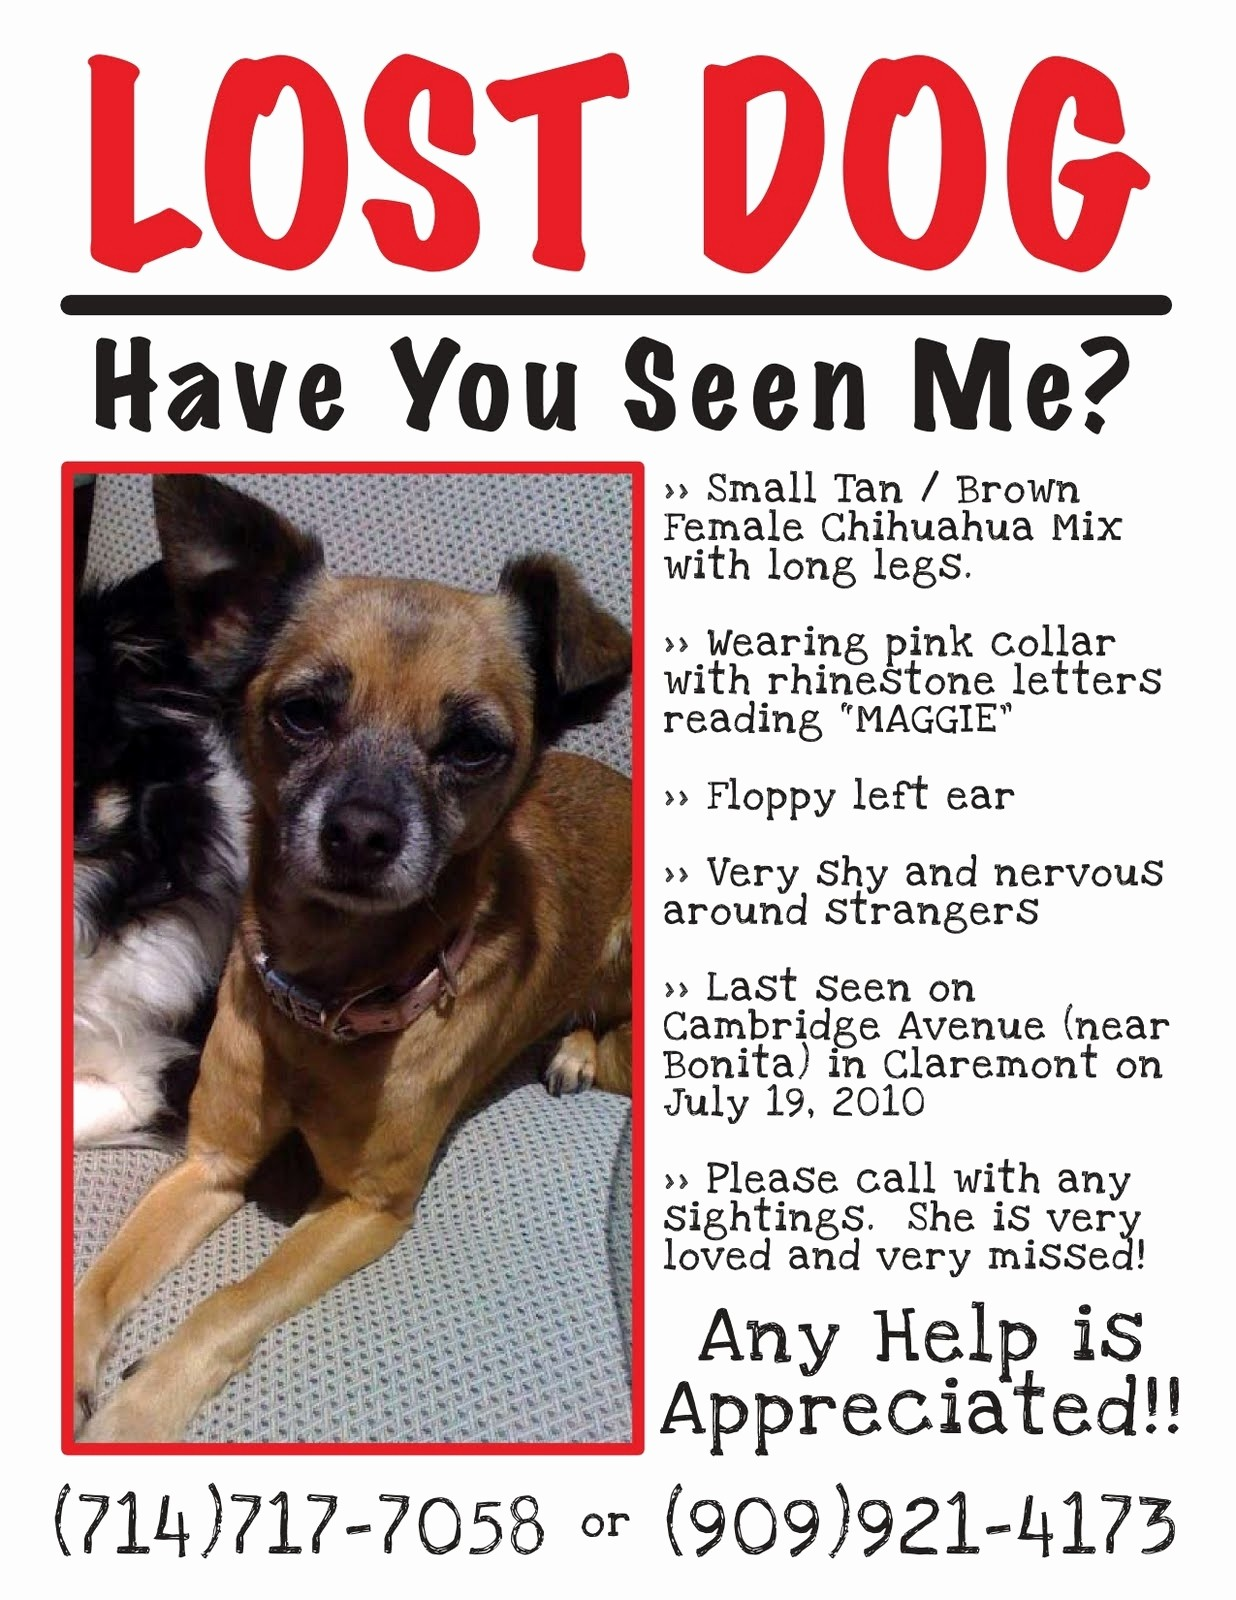 Lost and Found Sign Template Lovely Found Dog Poster Template Portablegasgrillweber